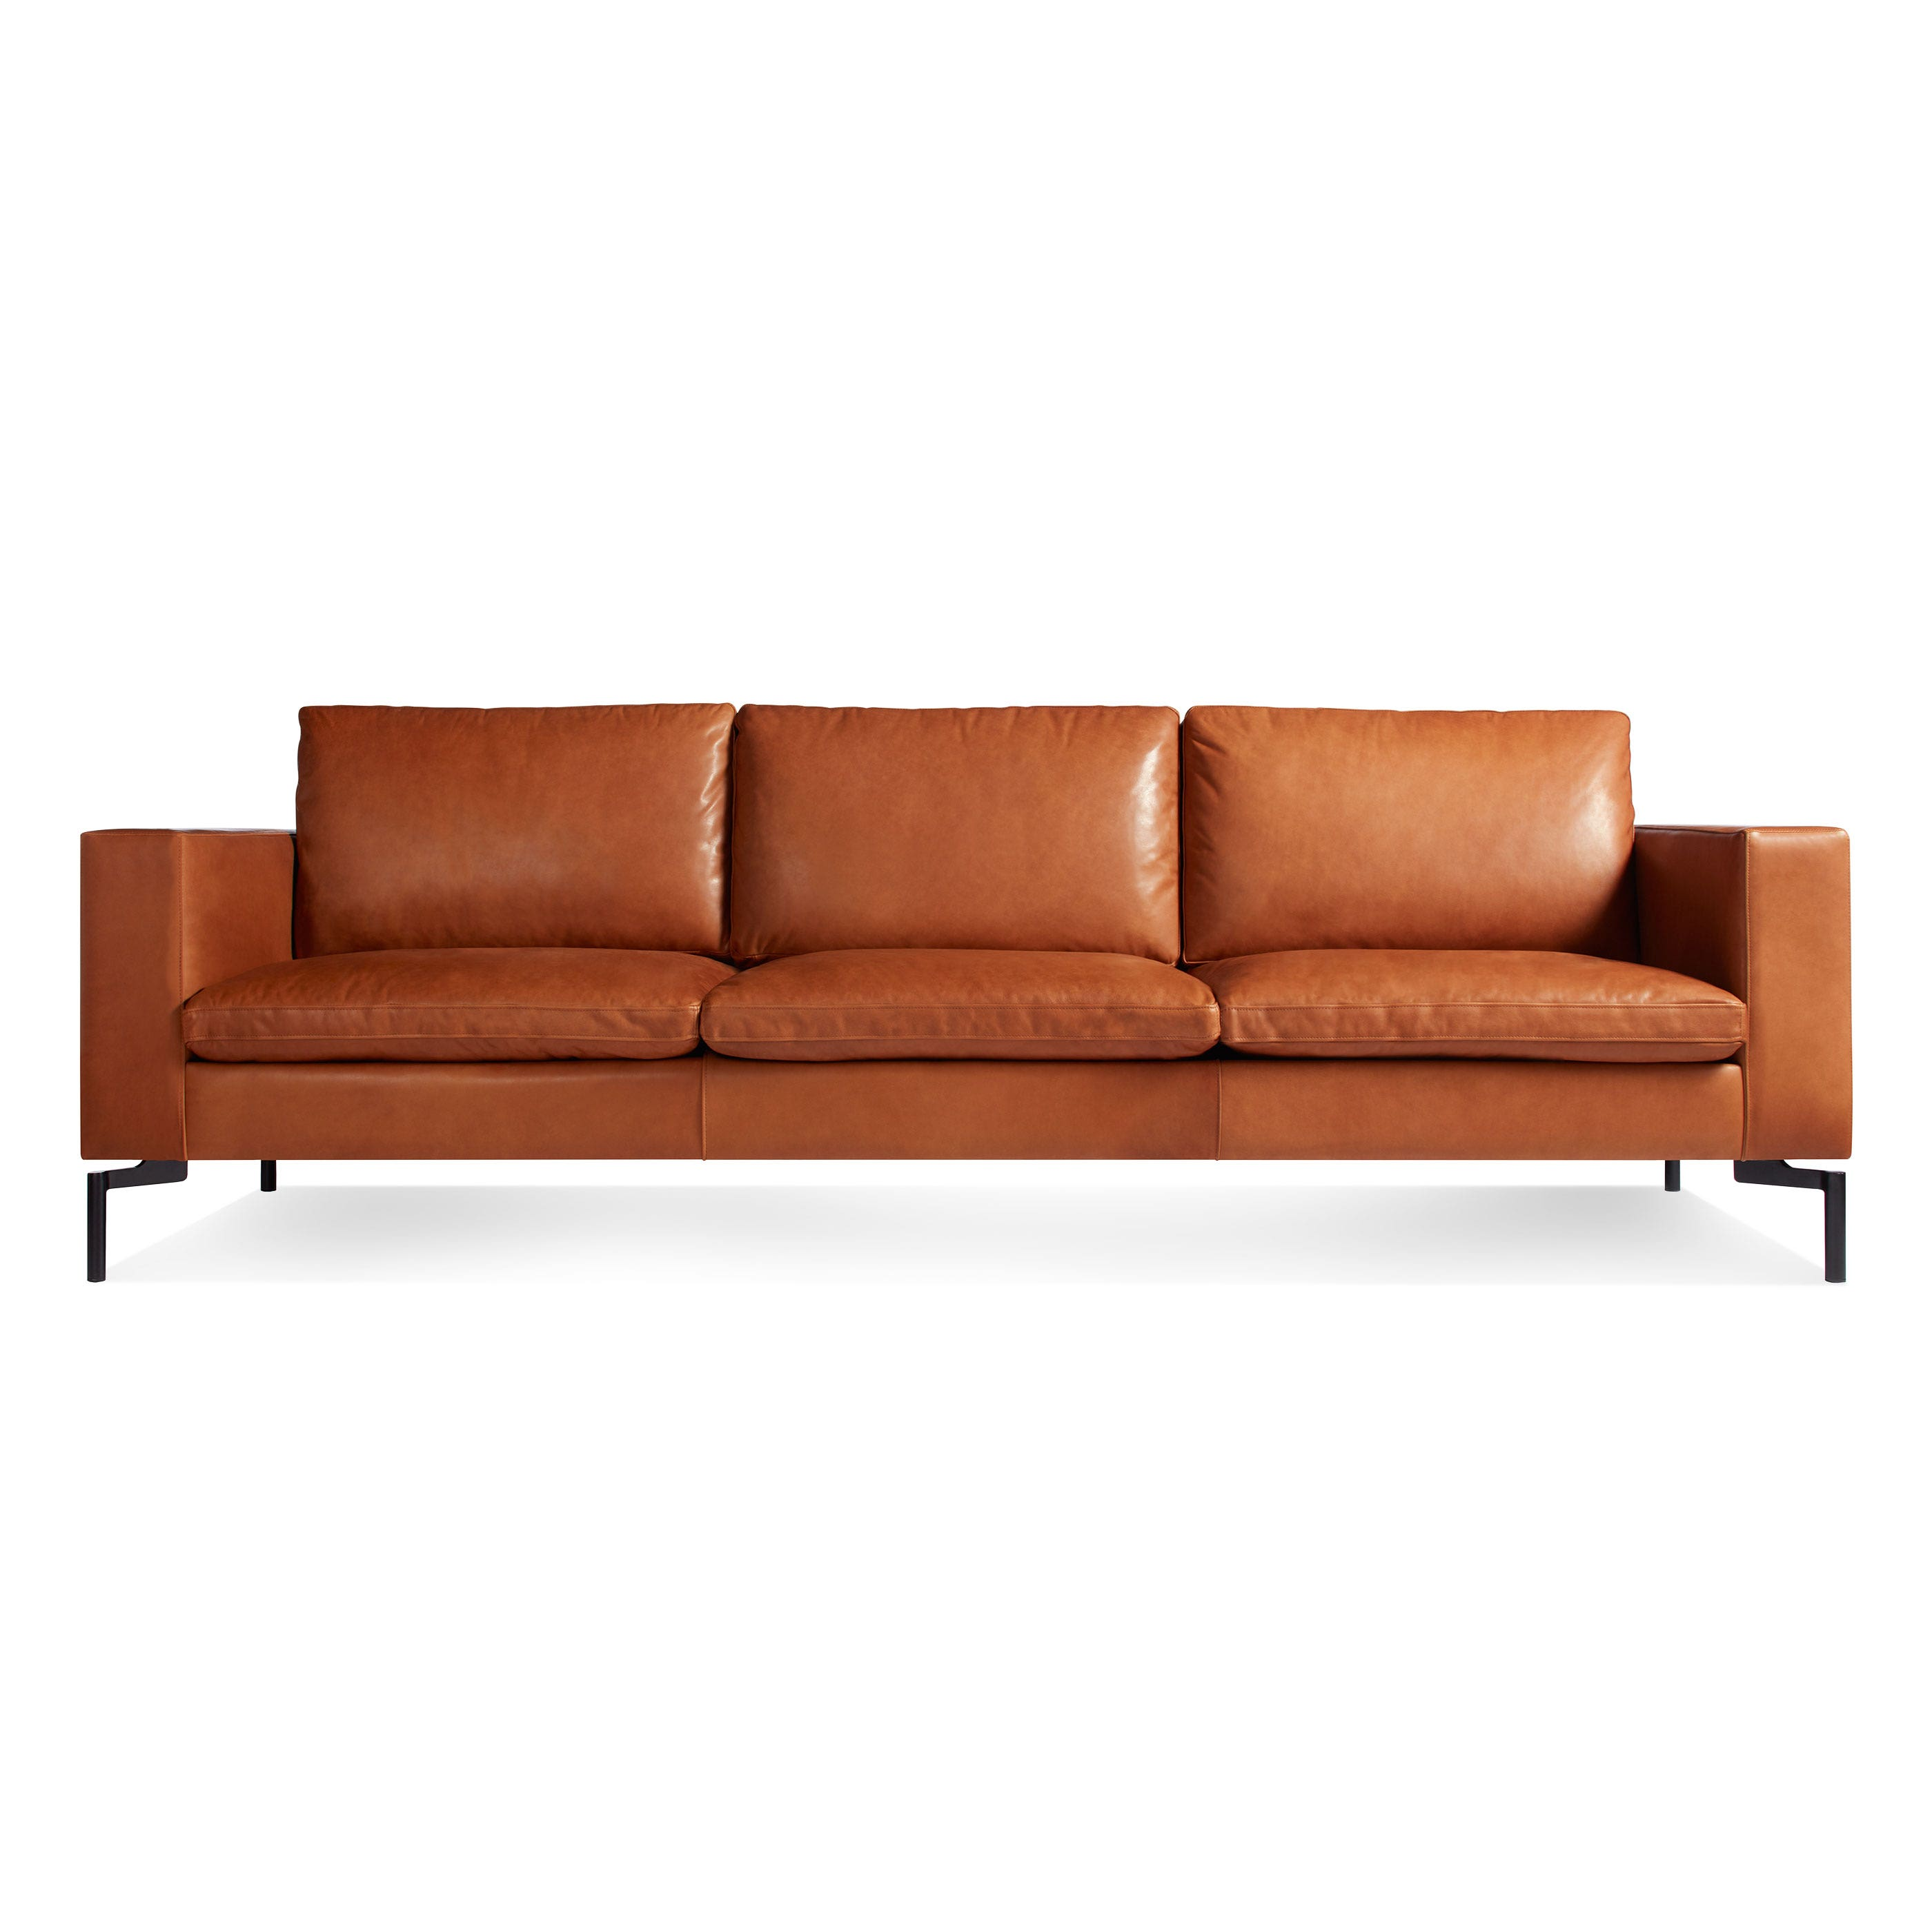 New Standard Medium Leather Sofa